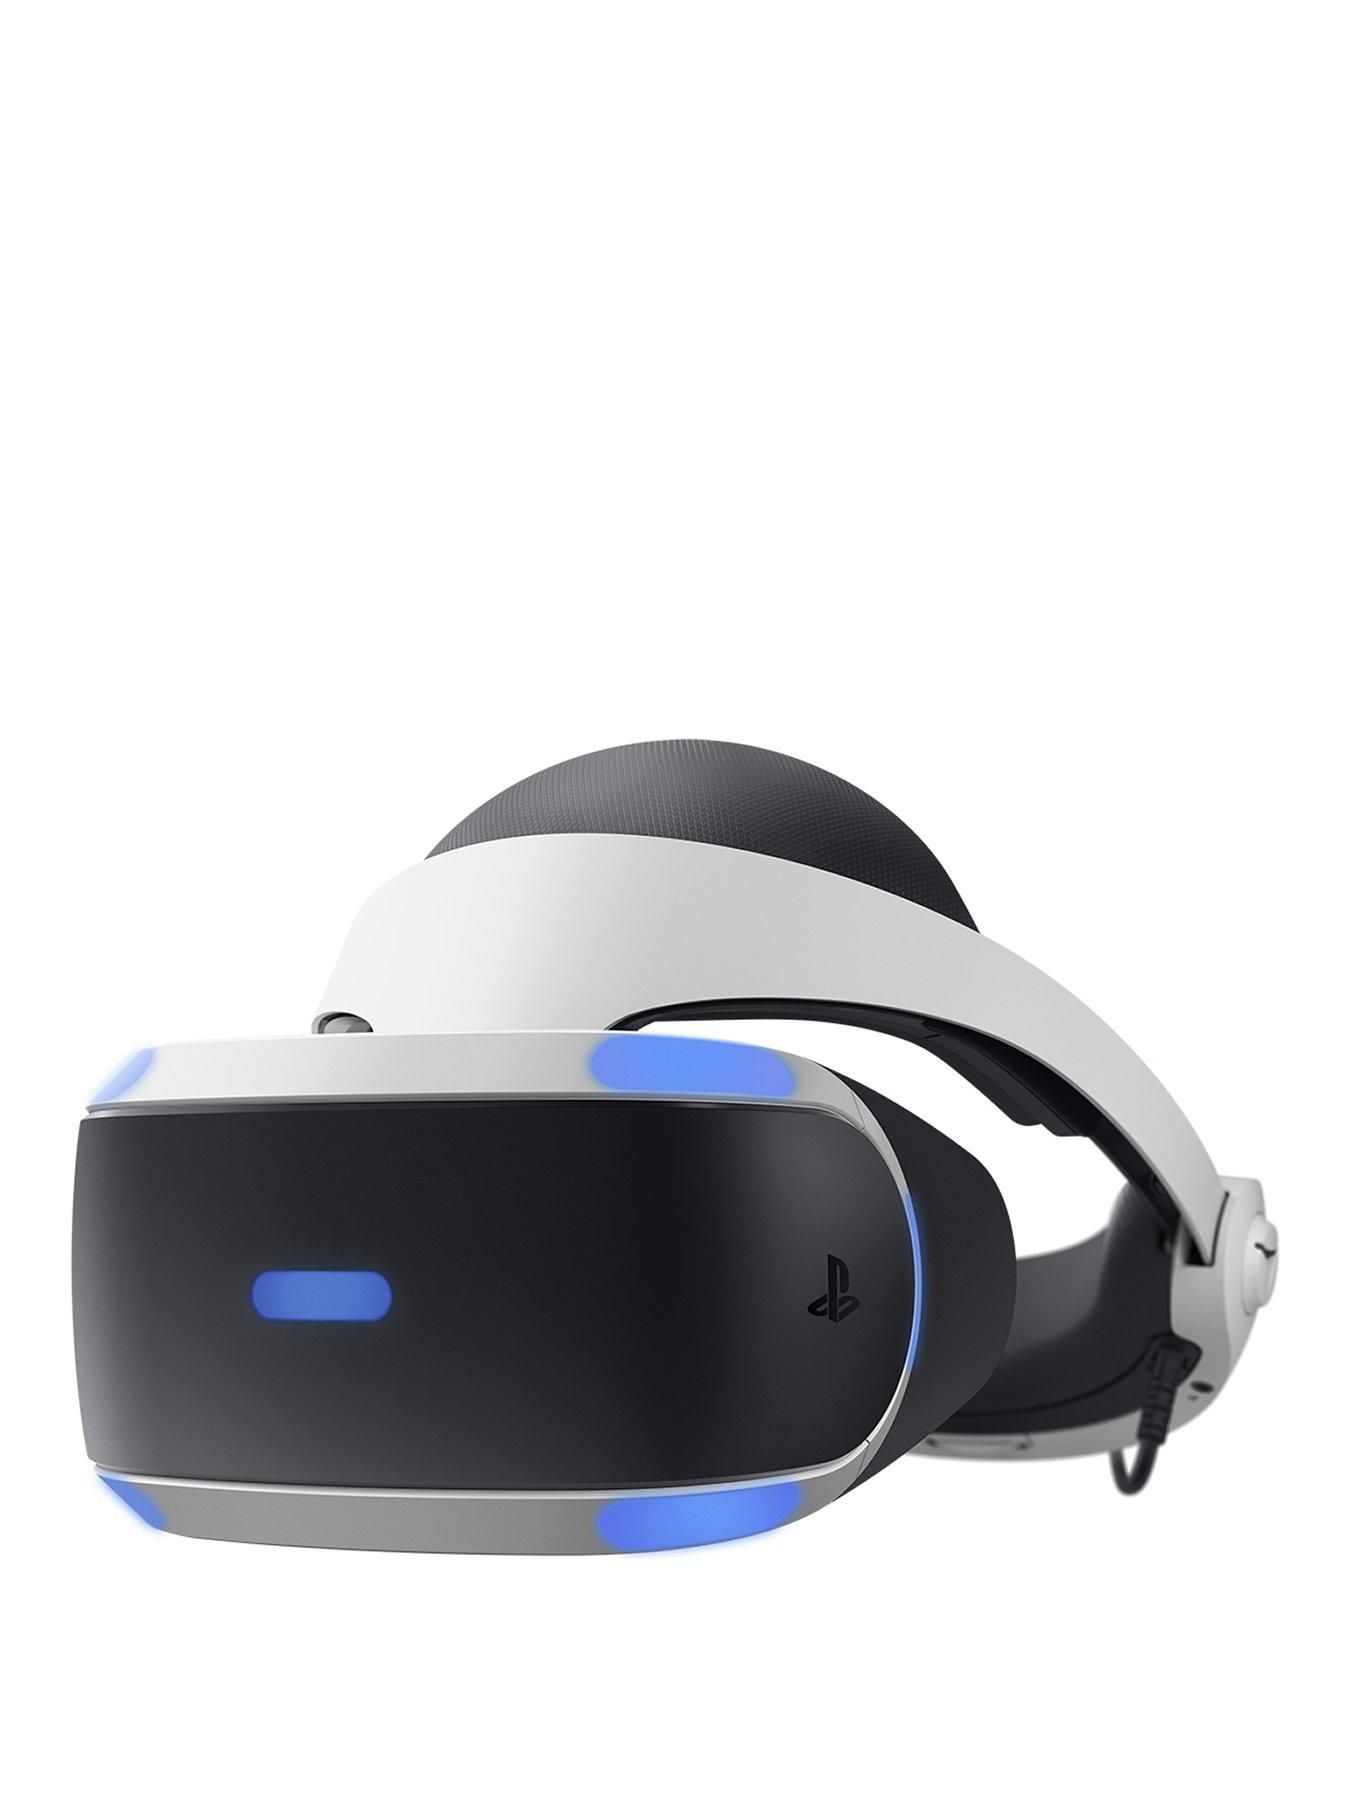 Games Gaming Dvd Www Very Co Uk In 2020 Playstation Vr Wearable Technology Vr Player